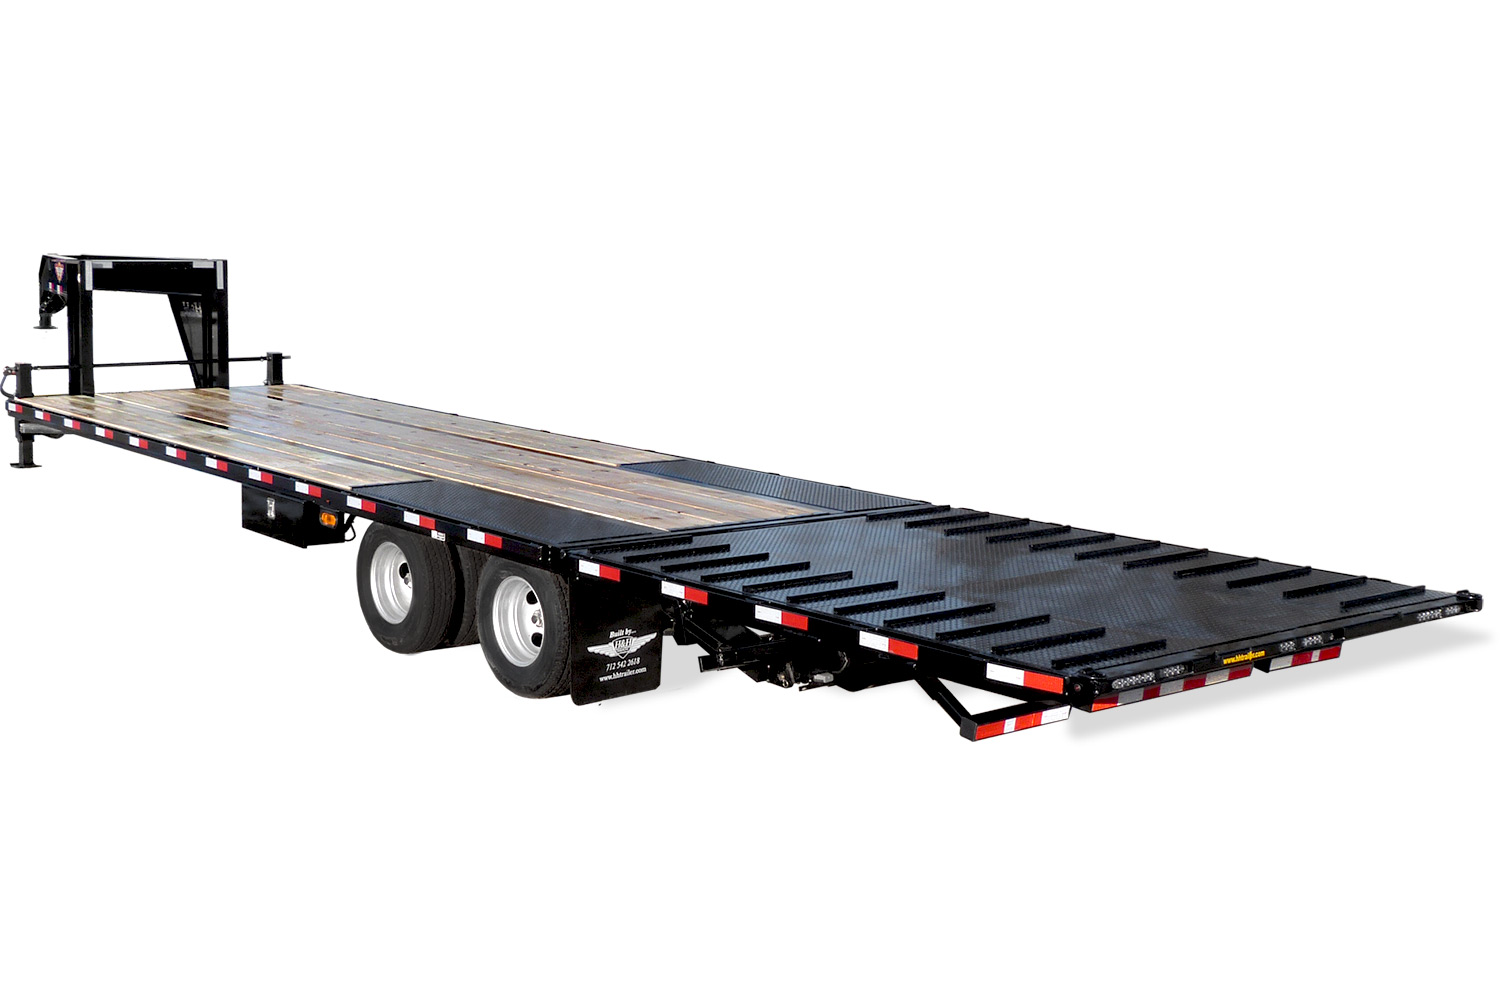 2020 H and H Trailer 25+5 19LB 24K GNLP DECKOVER SUPER DLX